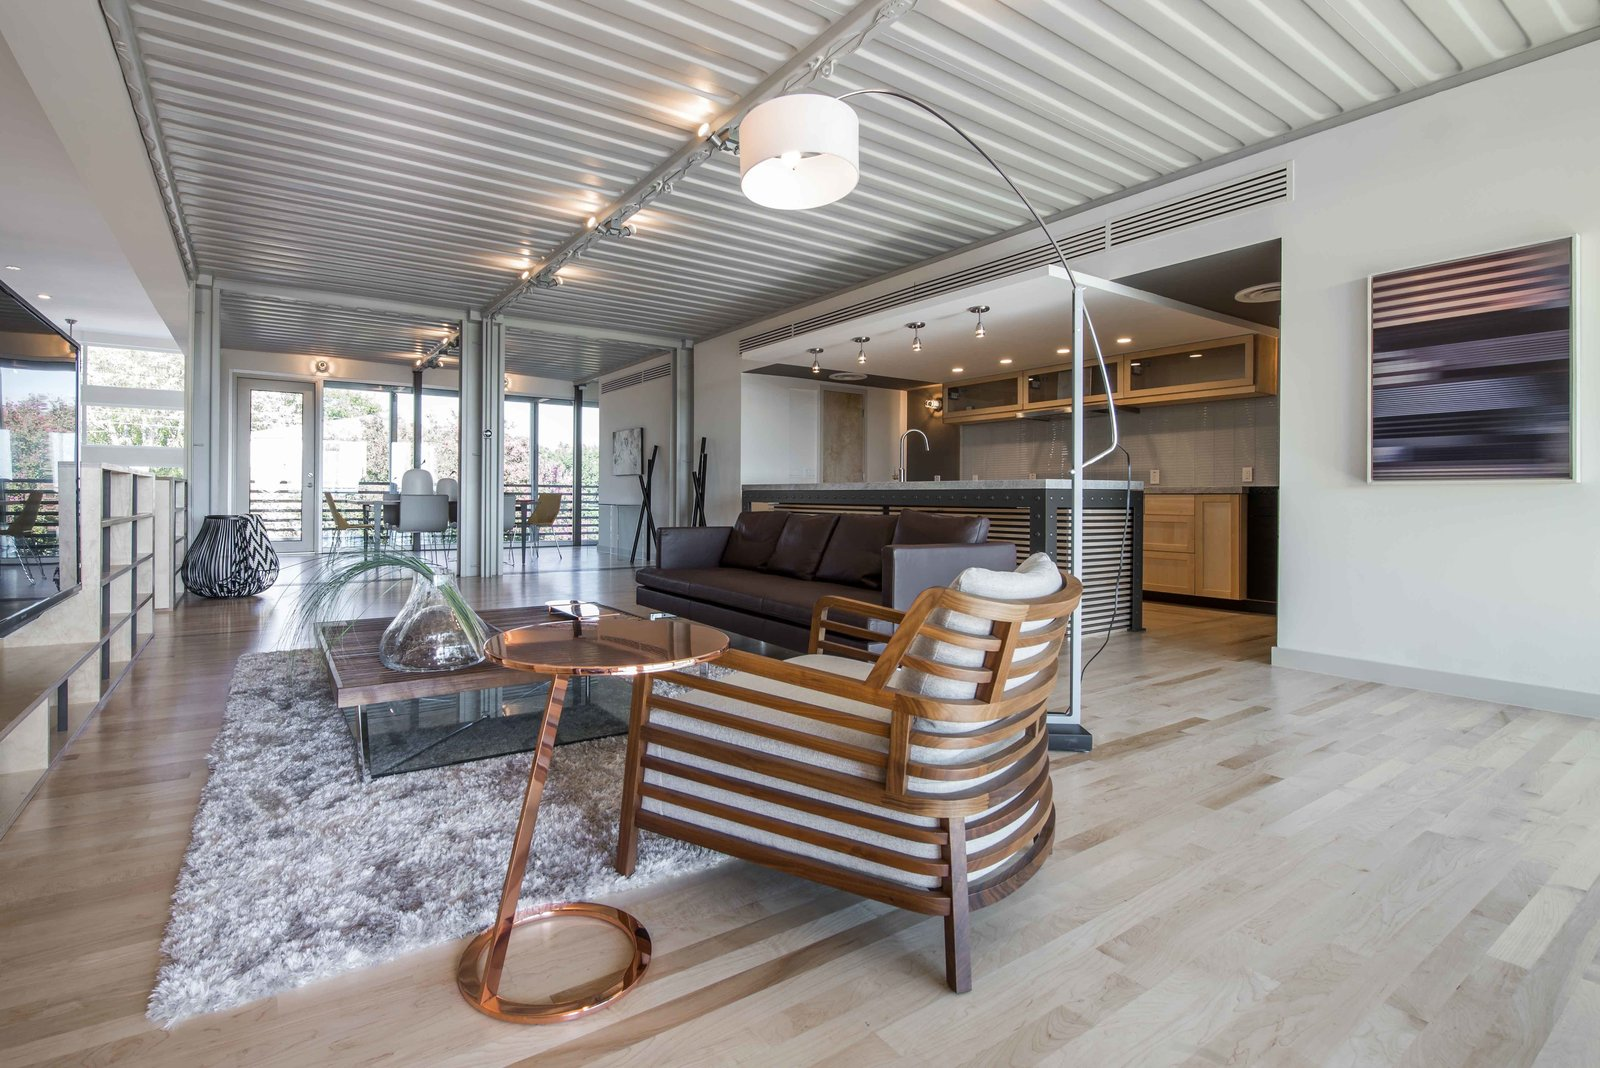 Corrugated steel ceilings are left exposed—a reminder that this is, after all, a container converted into a home. Spray foam insulation keeps the space from experiencing extreme temperature shifts.  This House Was Built Out of 14 Shipping Containers by Esha Chhabra